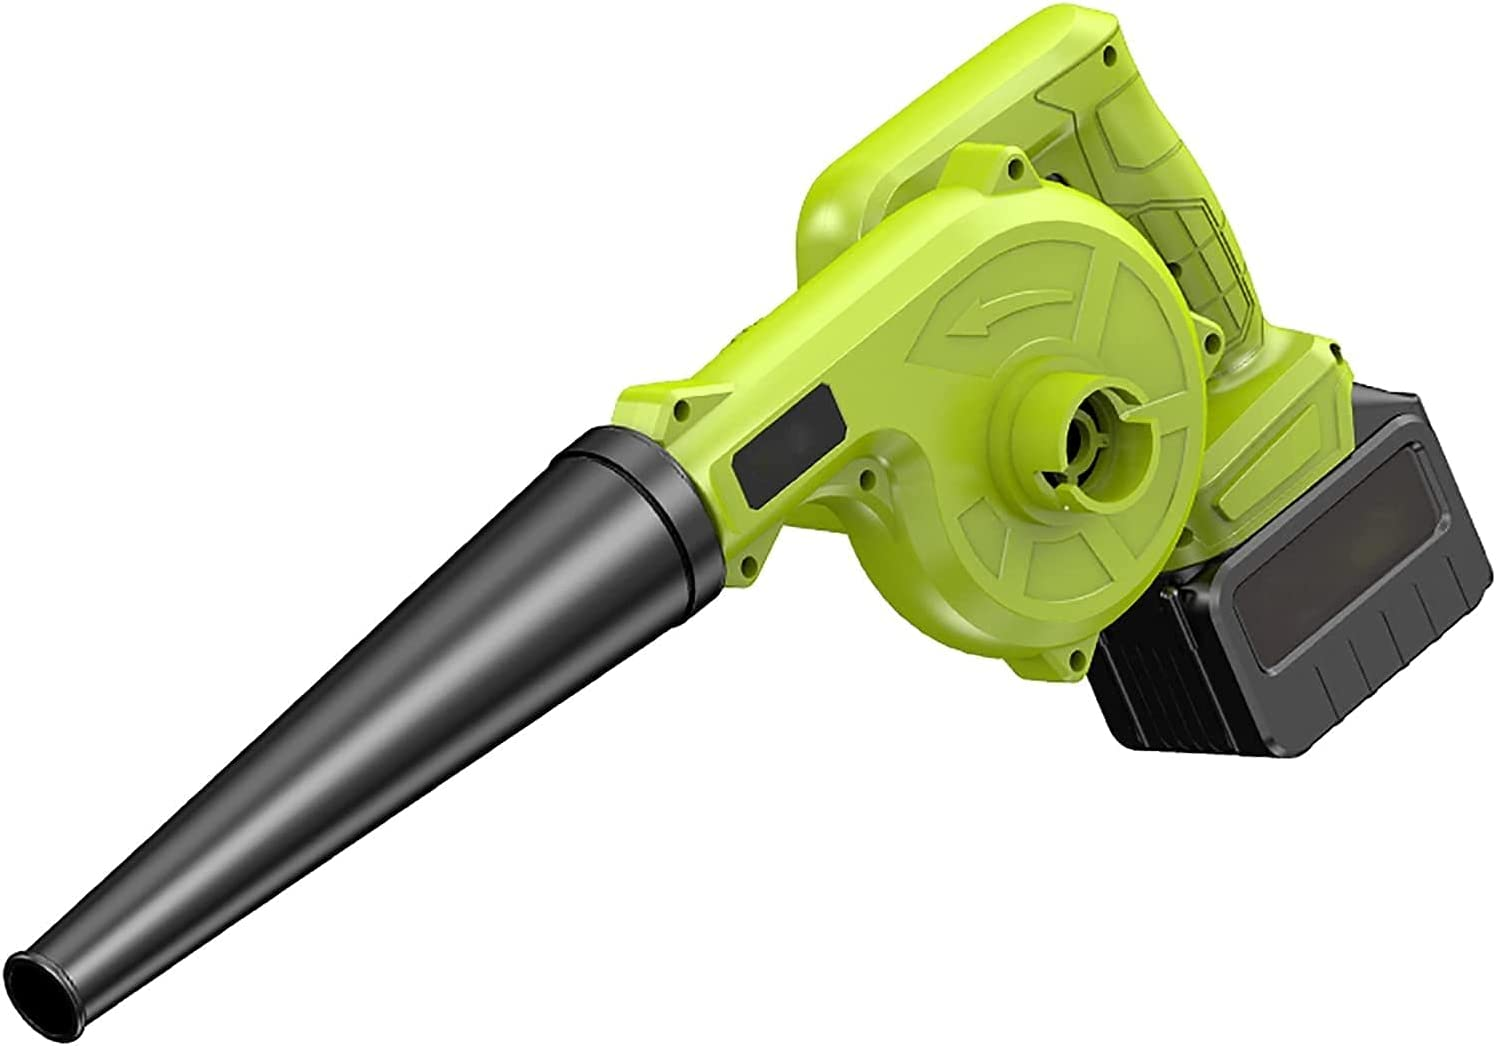 CFDZCP Leaf Max 71% OFF Blowers Vacuums Lightweight 2021 autumn and winter new Cordless Electric